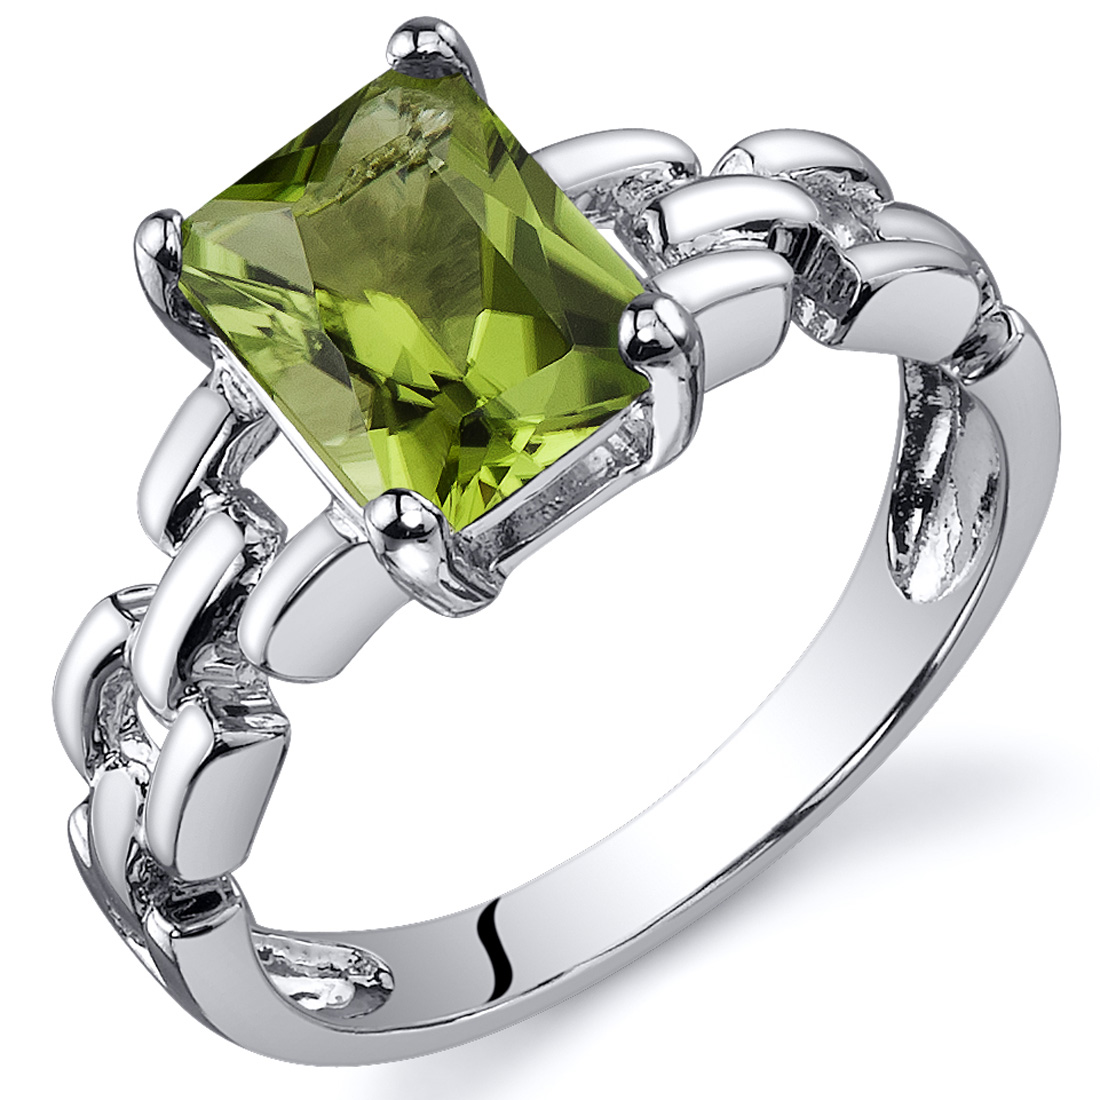 Peora 1.50 Ct Green Amethyst Engagement Ring in Rhodium-Plated Sterling Silver